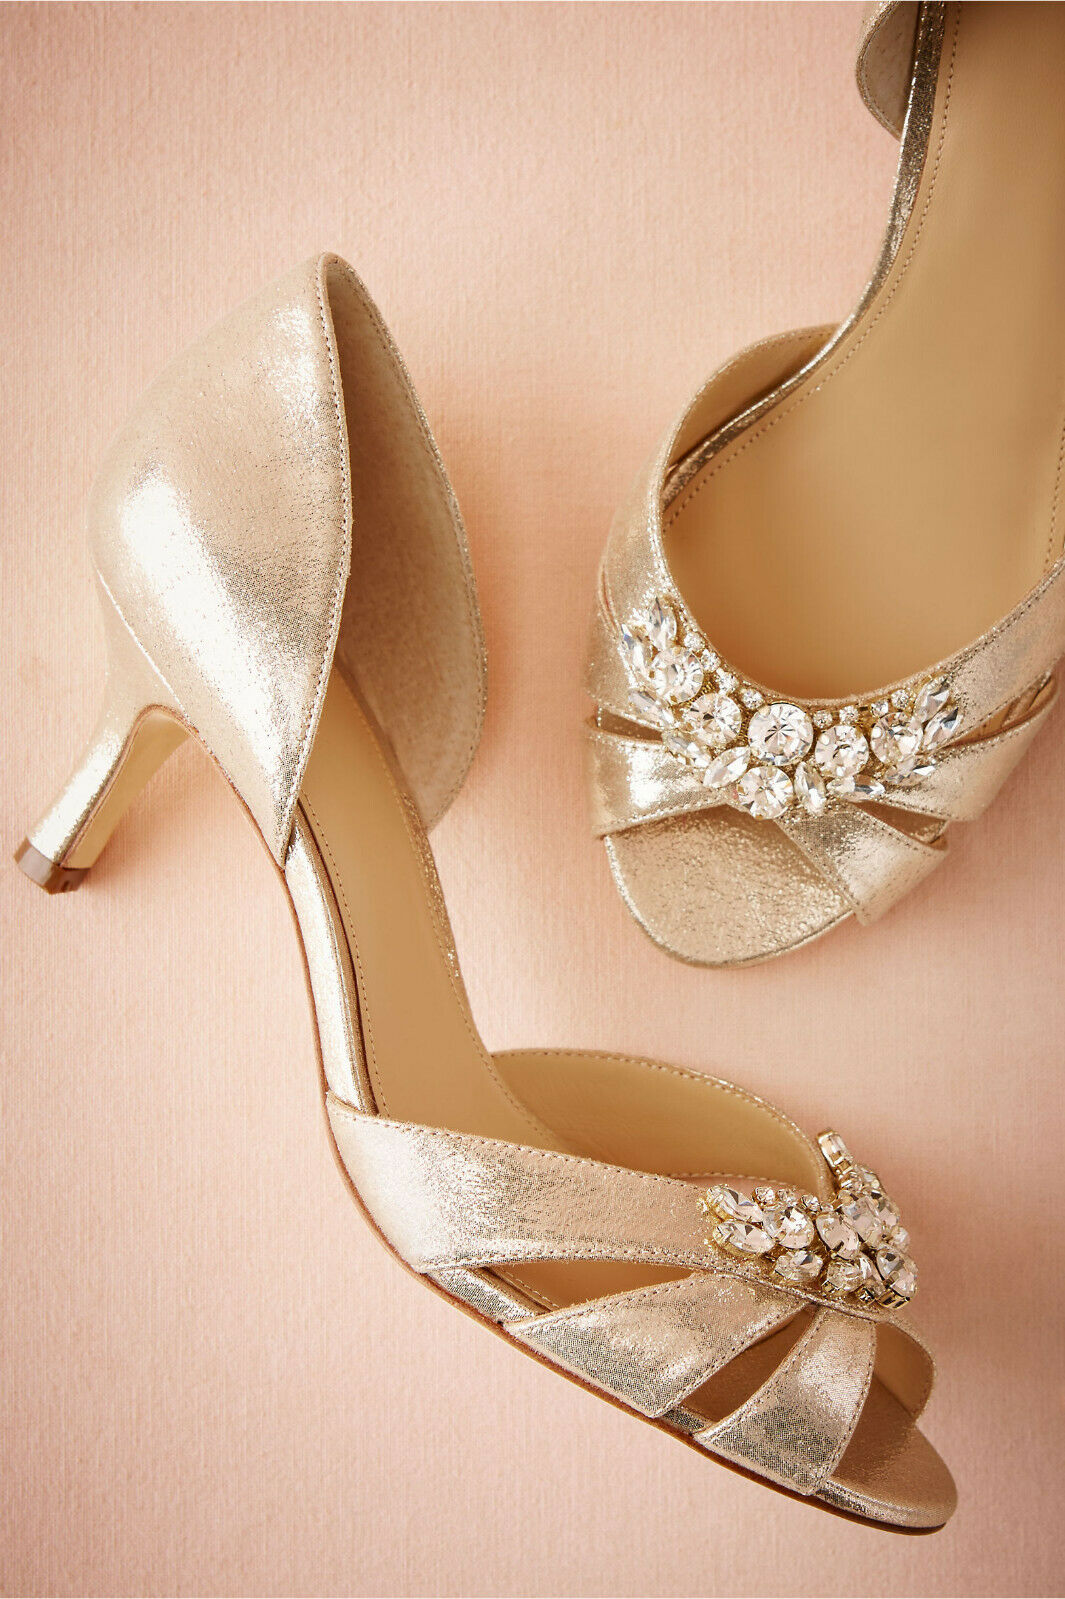 FORMAL BRIDE SHOES 6.5 BHLDN RHINESTONE gold SLIP ON KITTEN HEEL SOLDOUT 130 EUC